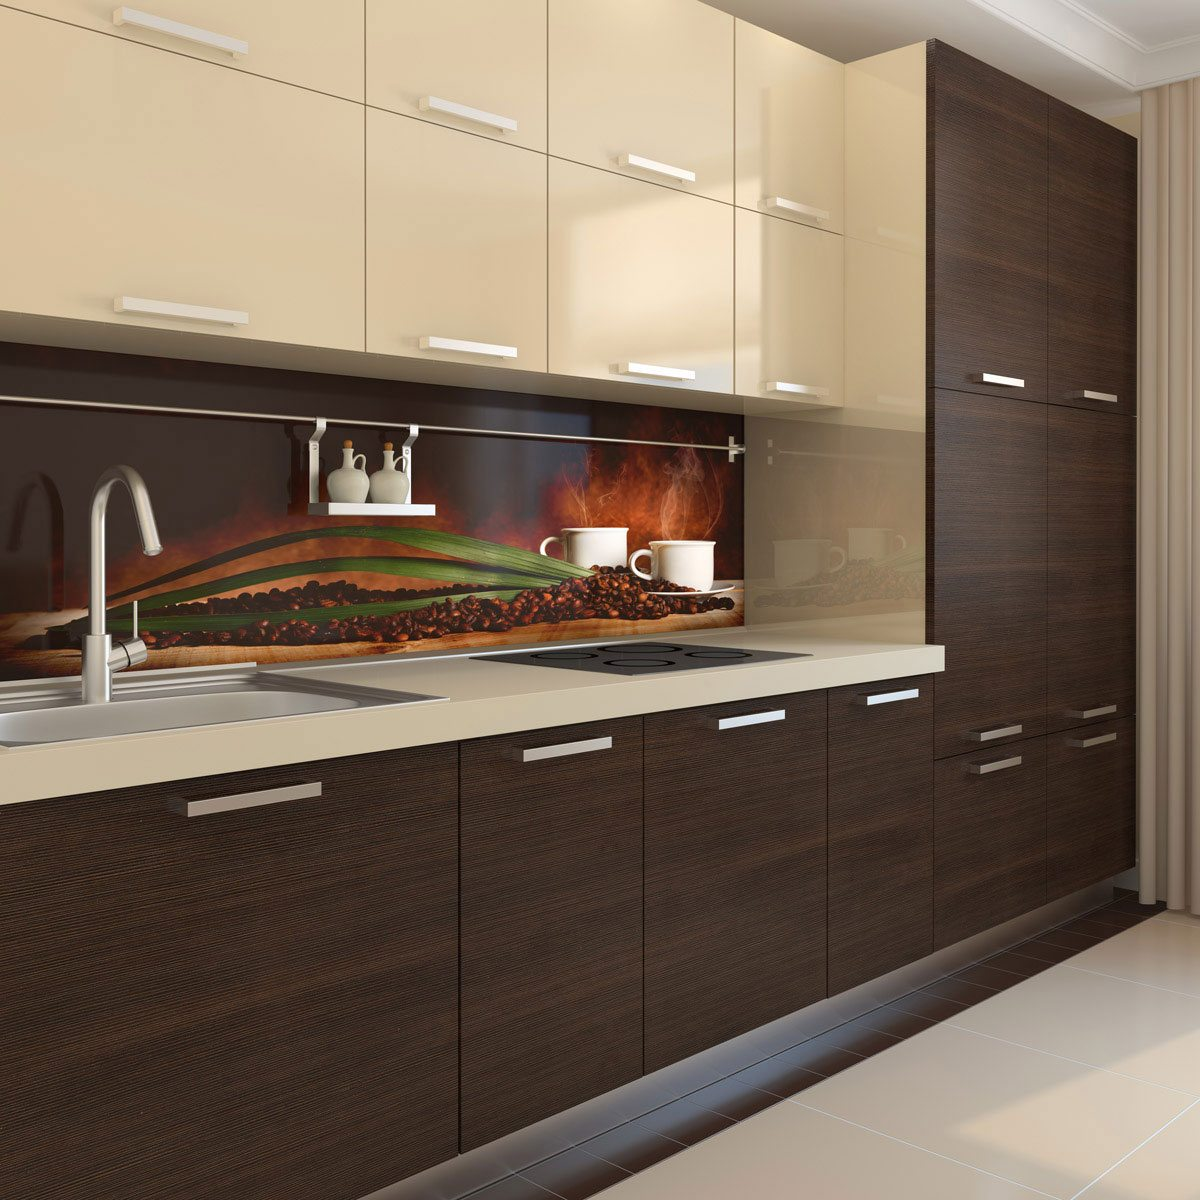 Coffee & Chocolate kitchen splashback